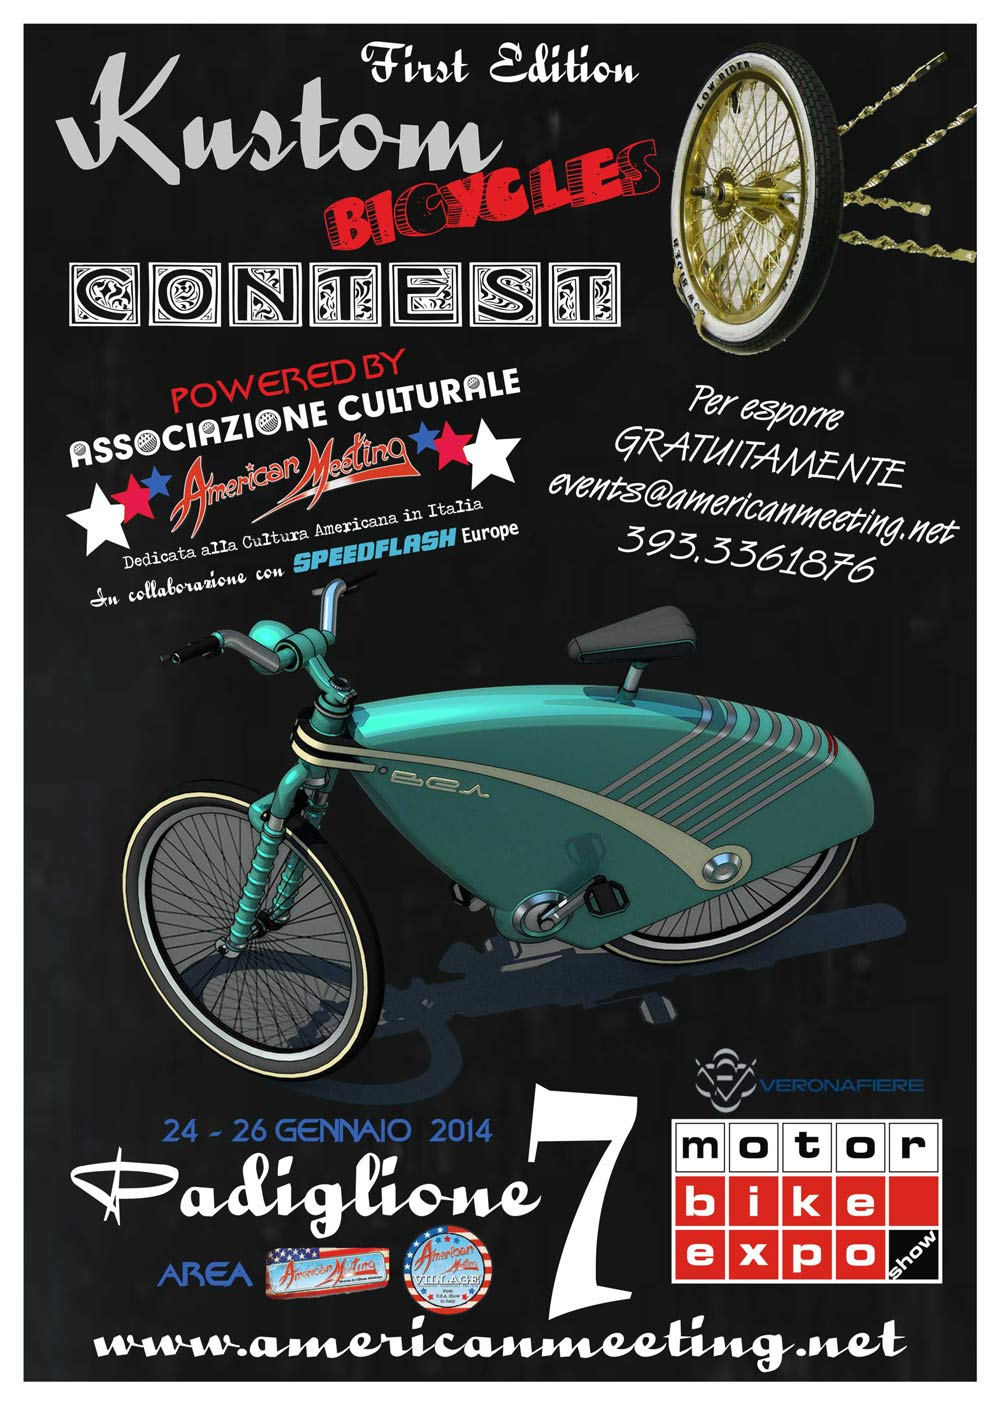 Kustom-Bicycles-Contest-FRONTE---WEB